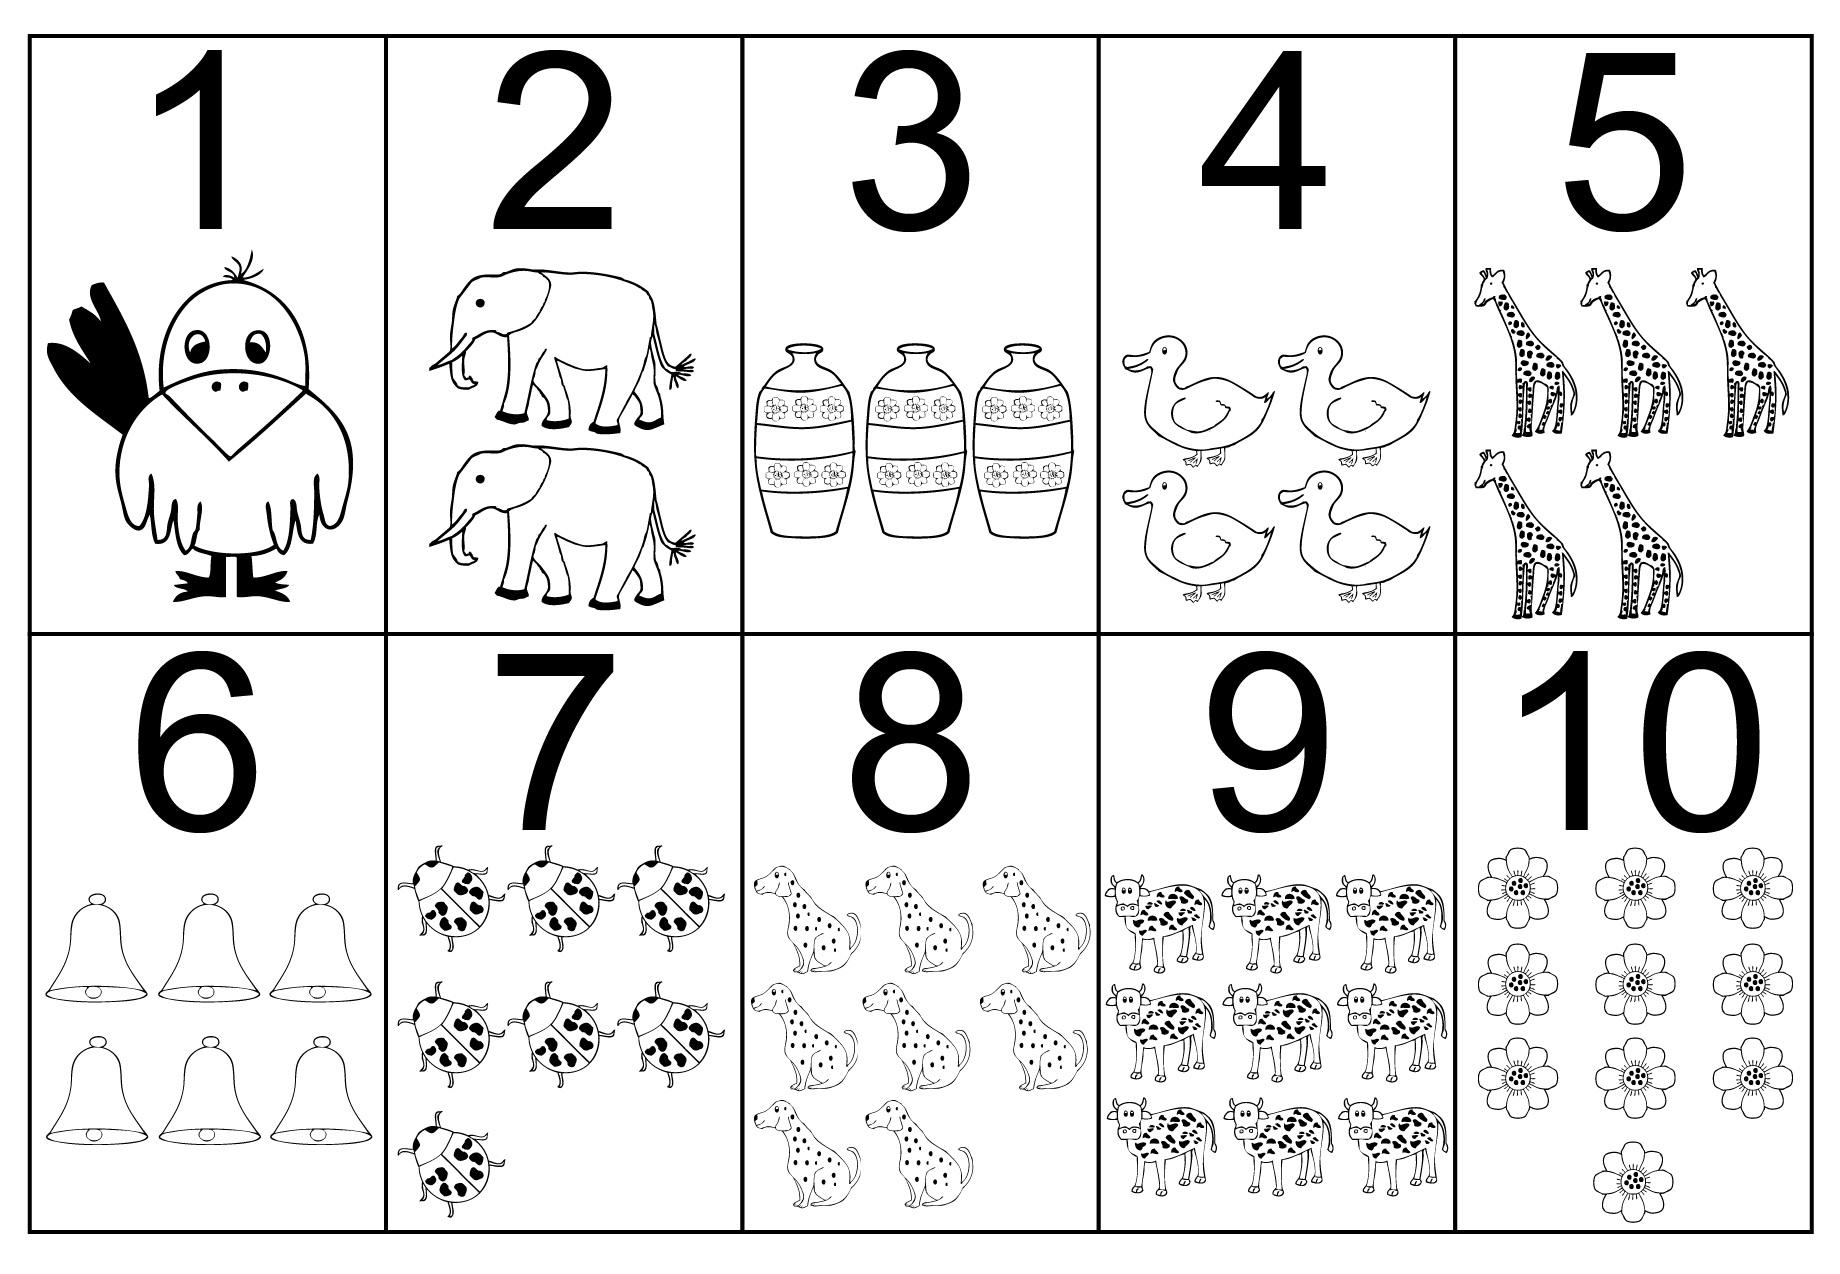 Number Coloring Page Free Free Printable Number Coloring Pages For ...